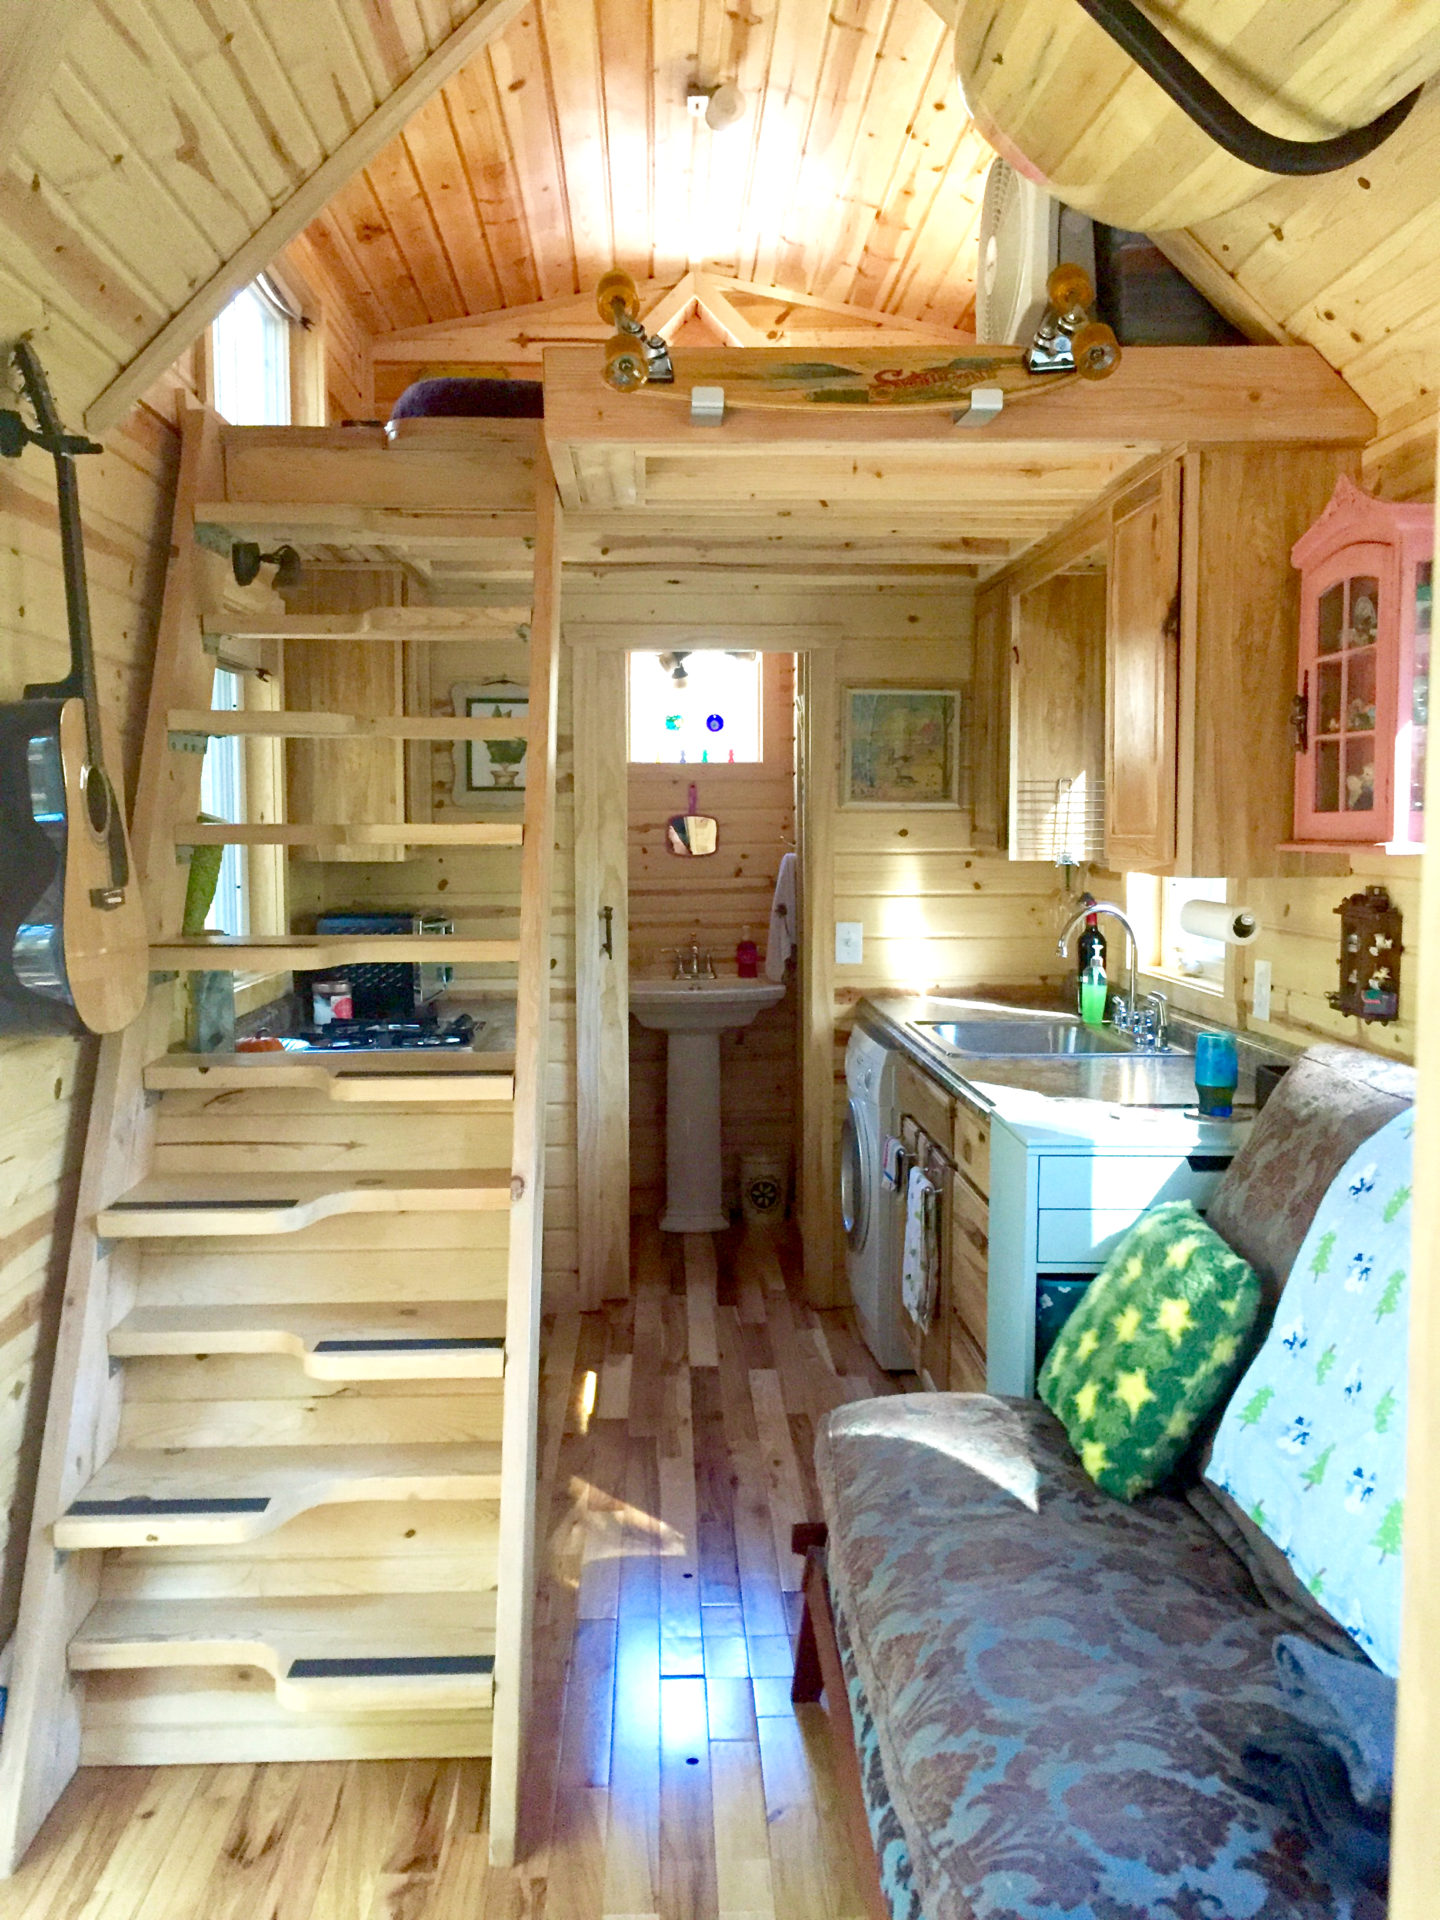 Kitchen Ideas For Small Space Nicki S Colorful Victorian Tiny House After One Year